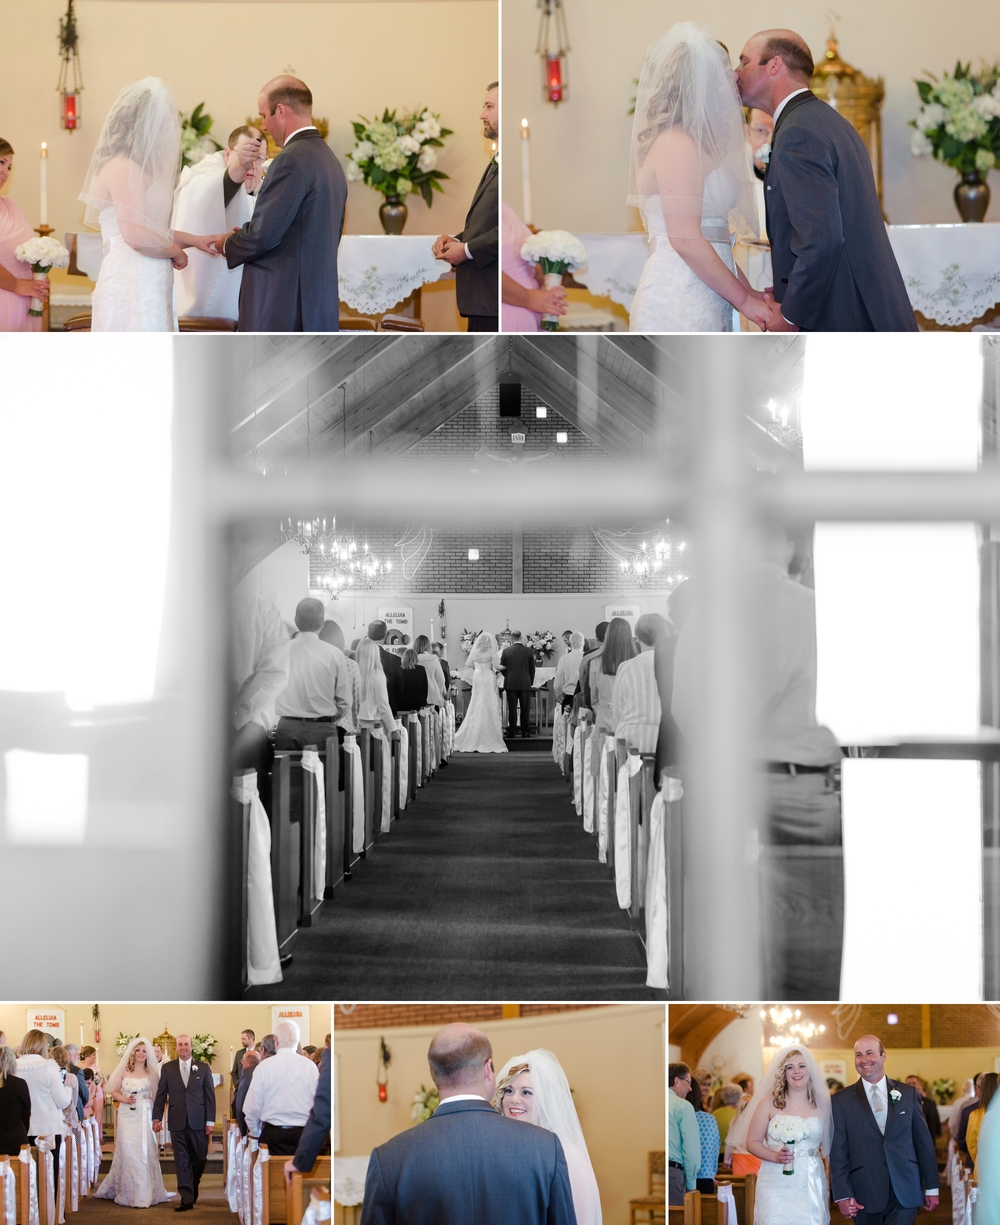 winery_wedding_photography_stl_st_louis_spring_april_poses 4.jpg